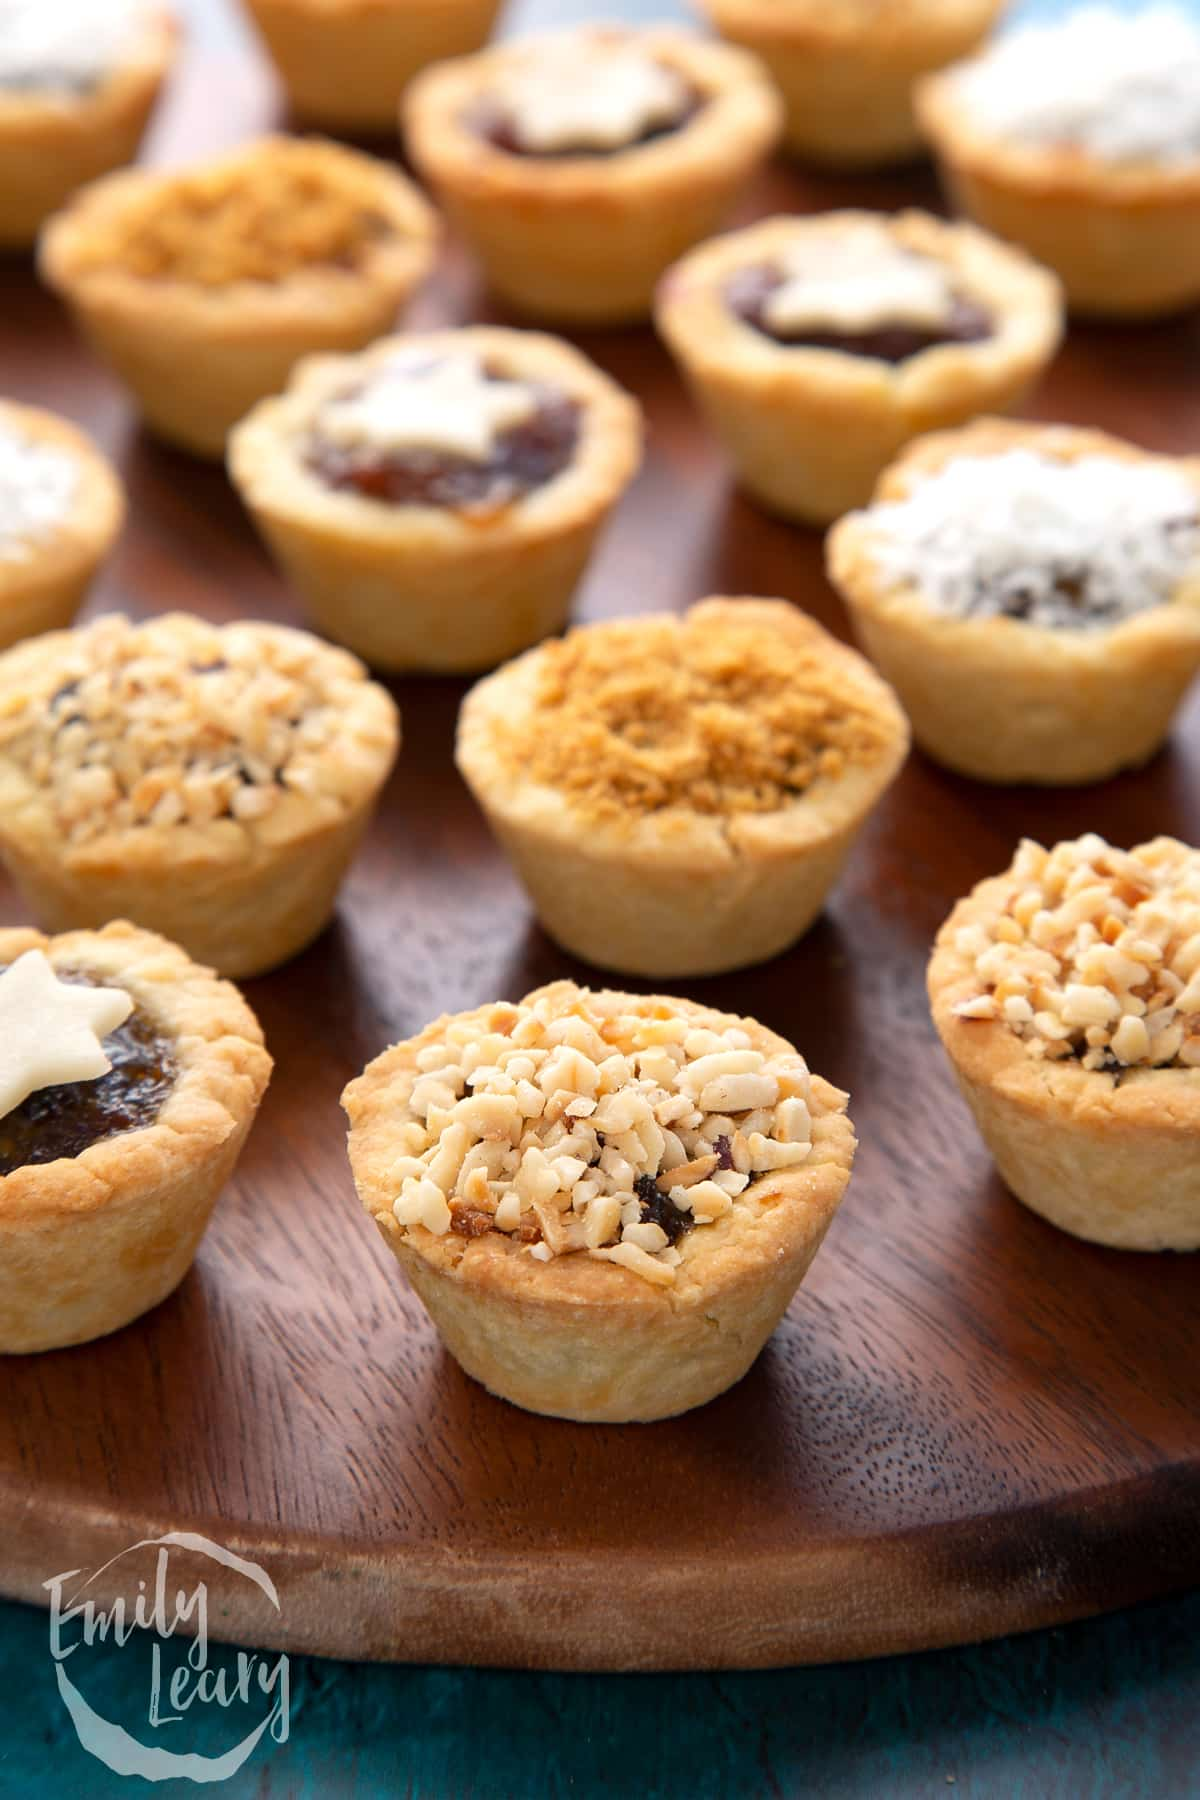 A chopped hazelnut topped mini mince pie. More mini mince pies are also on the dark wooden board.